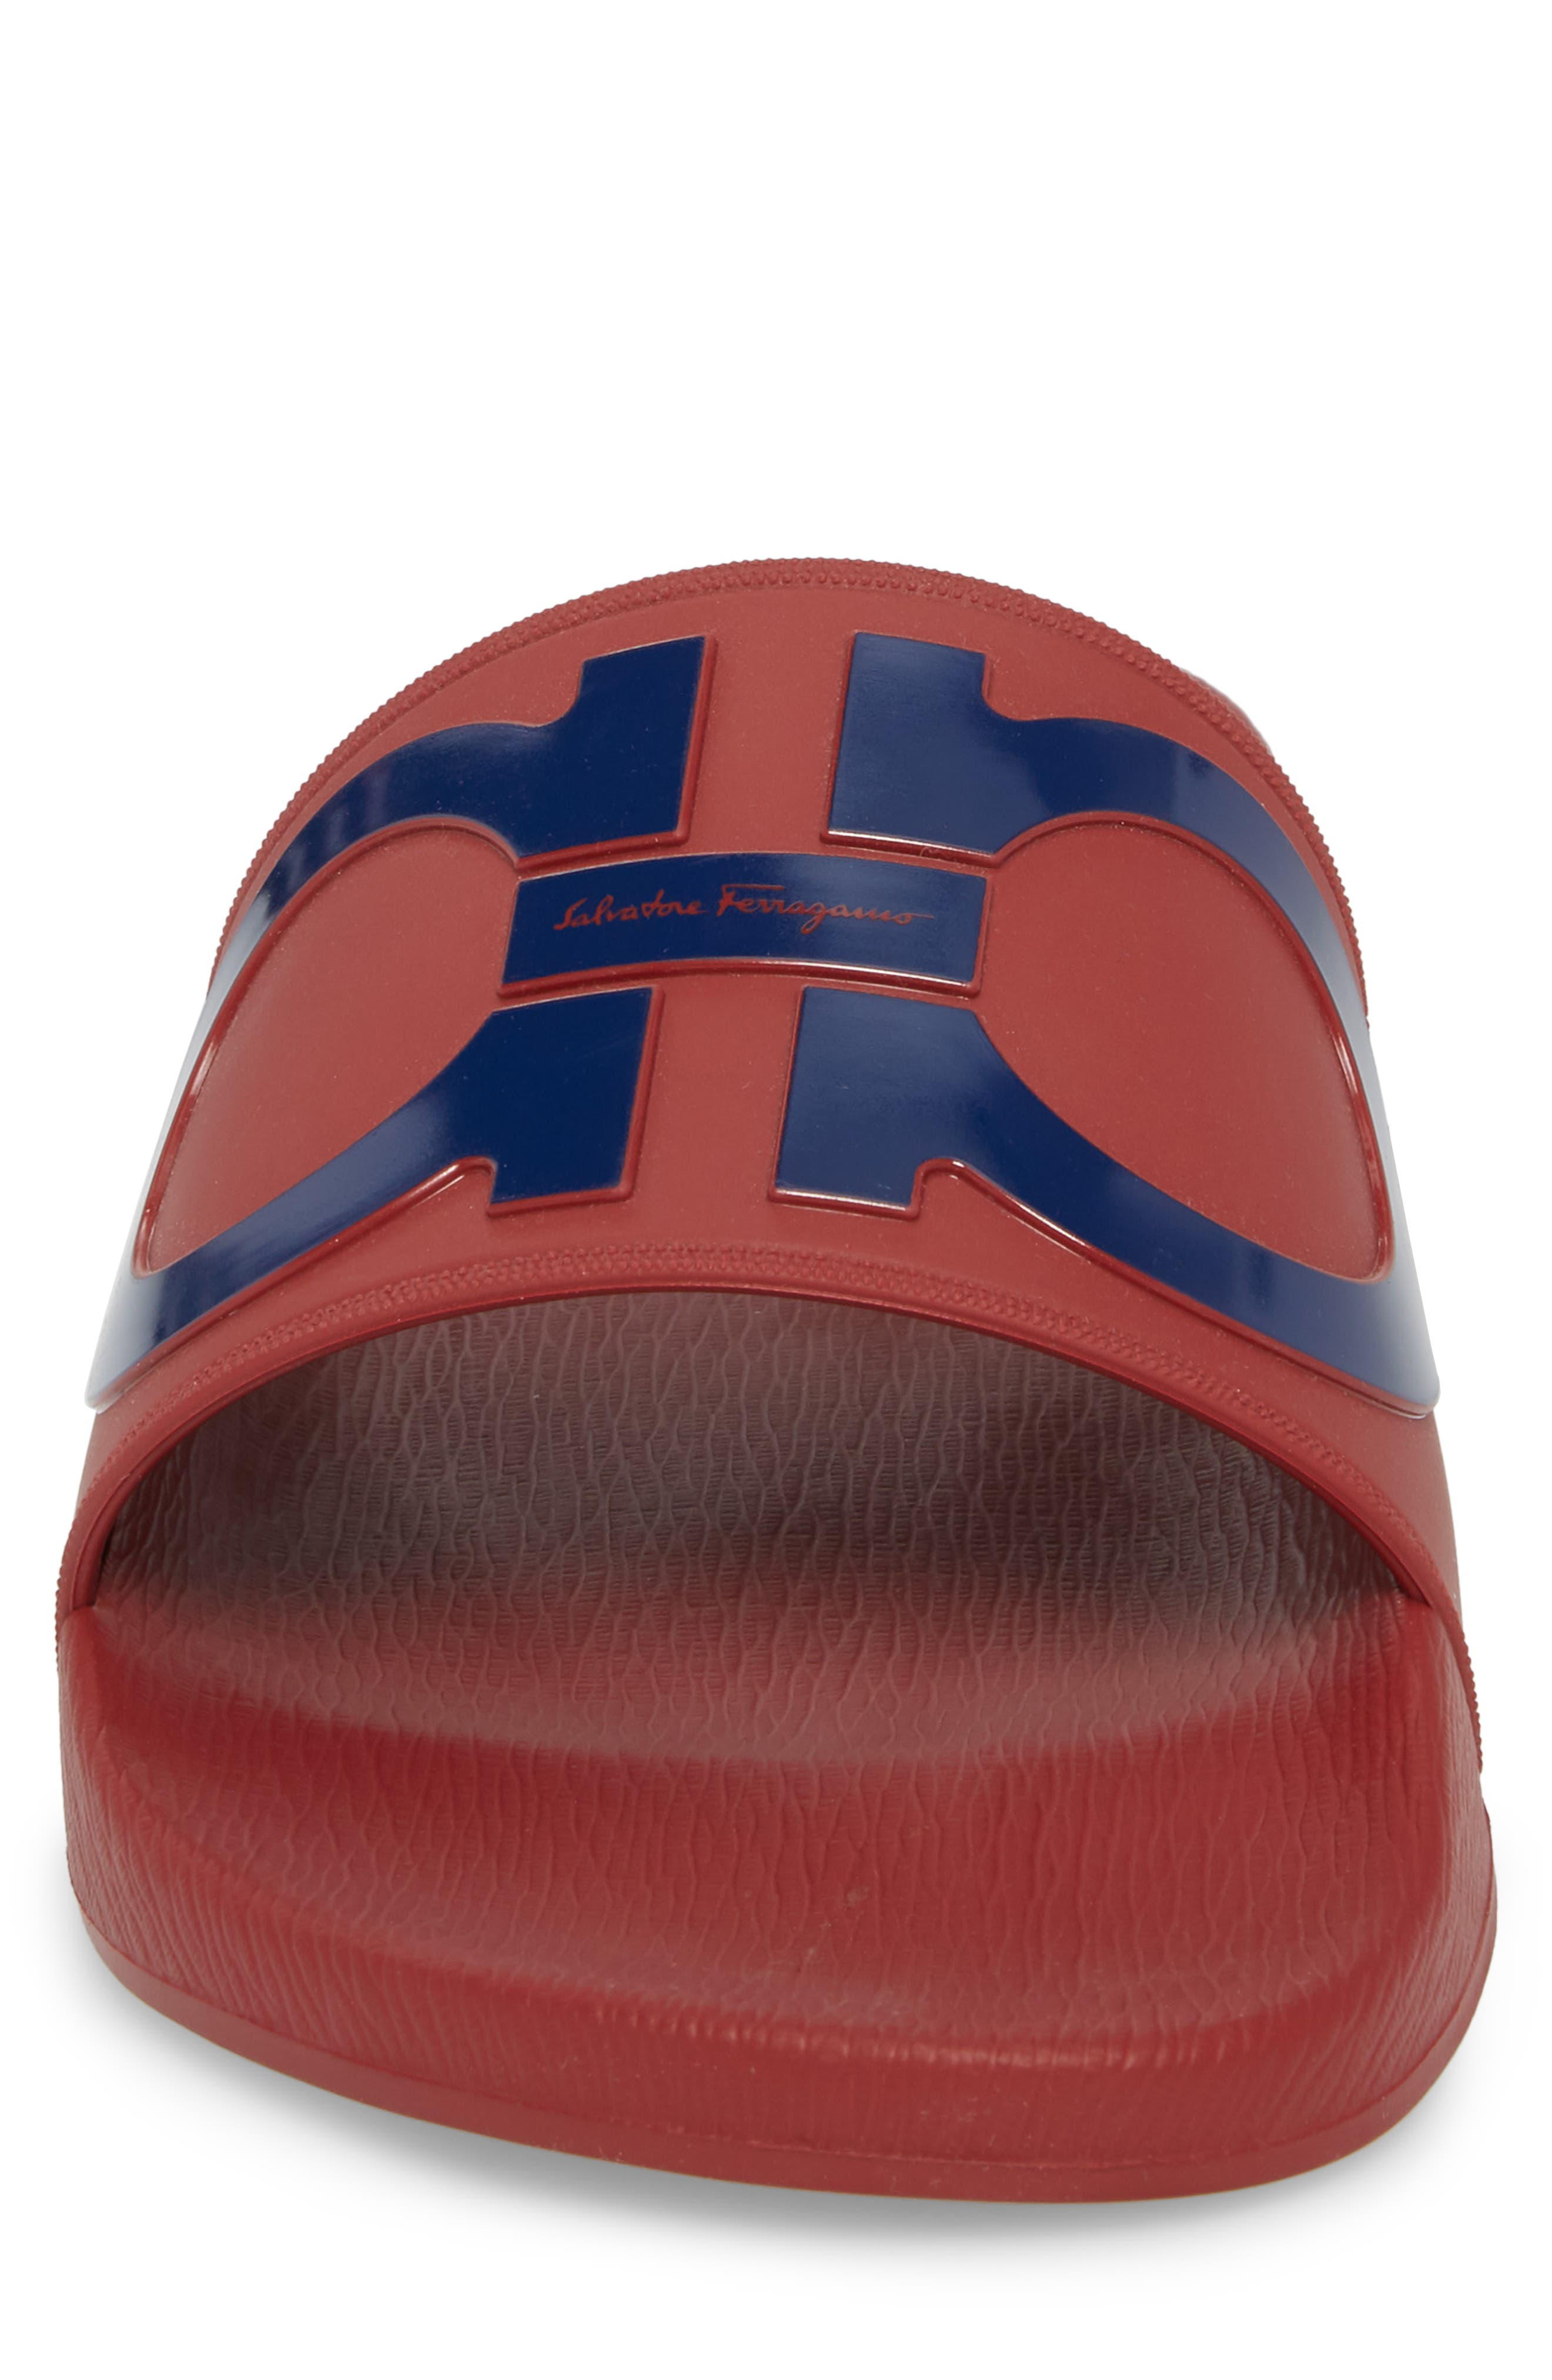 Groove Slide Sandal,                             Alternate thumbnail 4, color,                             Rouge